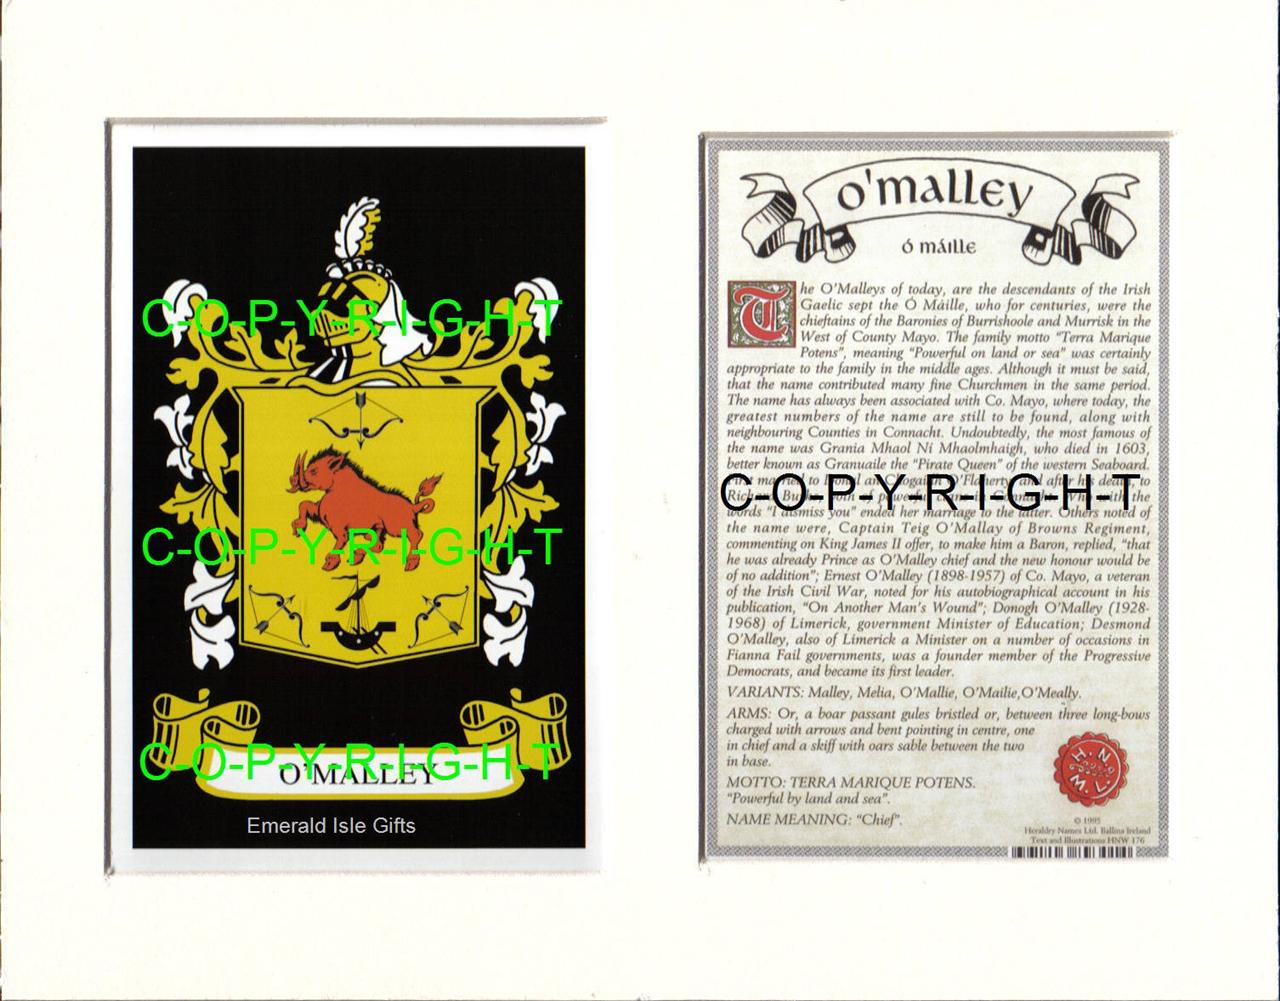 O-039-MALLEY-Family-Coat-of-Arms-Crest-History-Available-Mounted-or-Framed